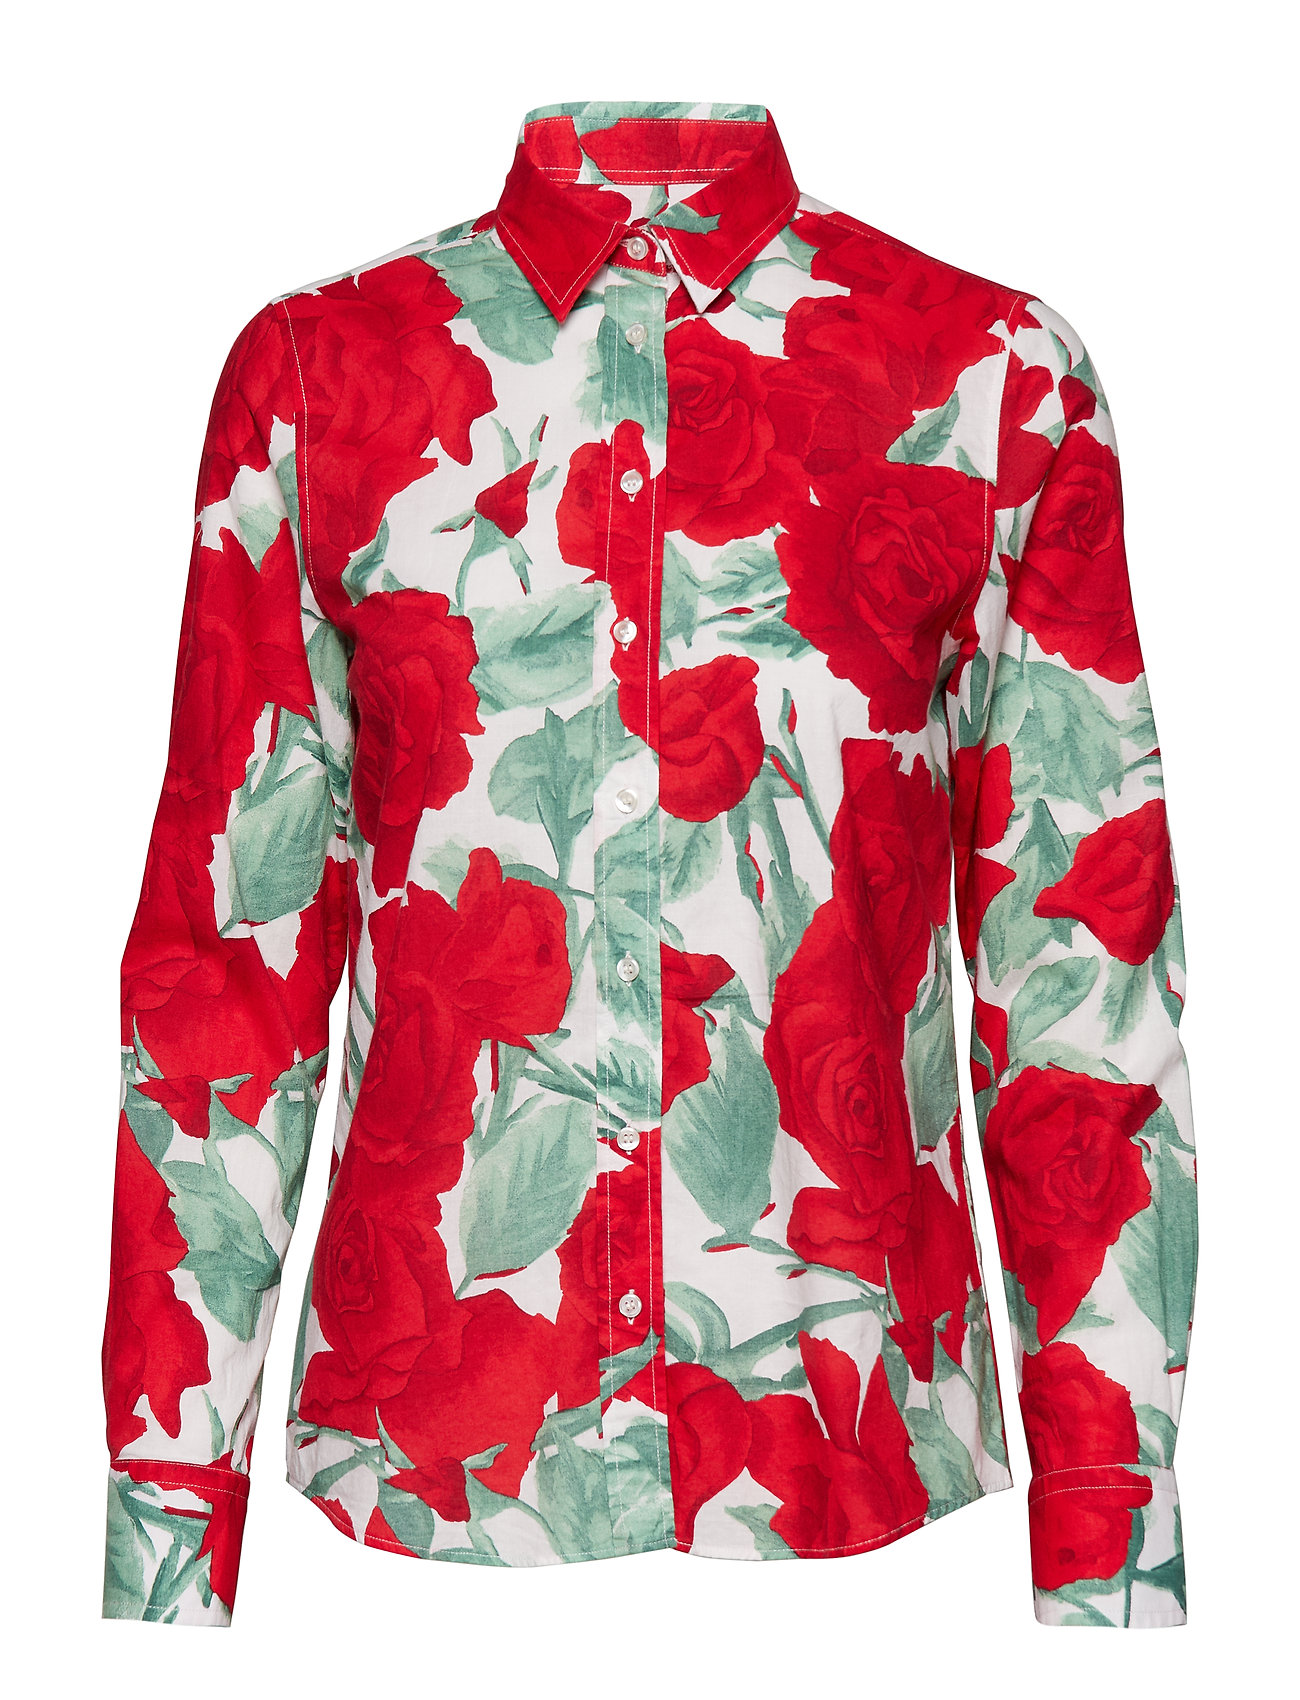 GANT O1. ROSE VOILE SHIRT - BRIGHT RED